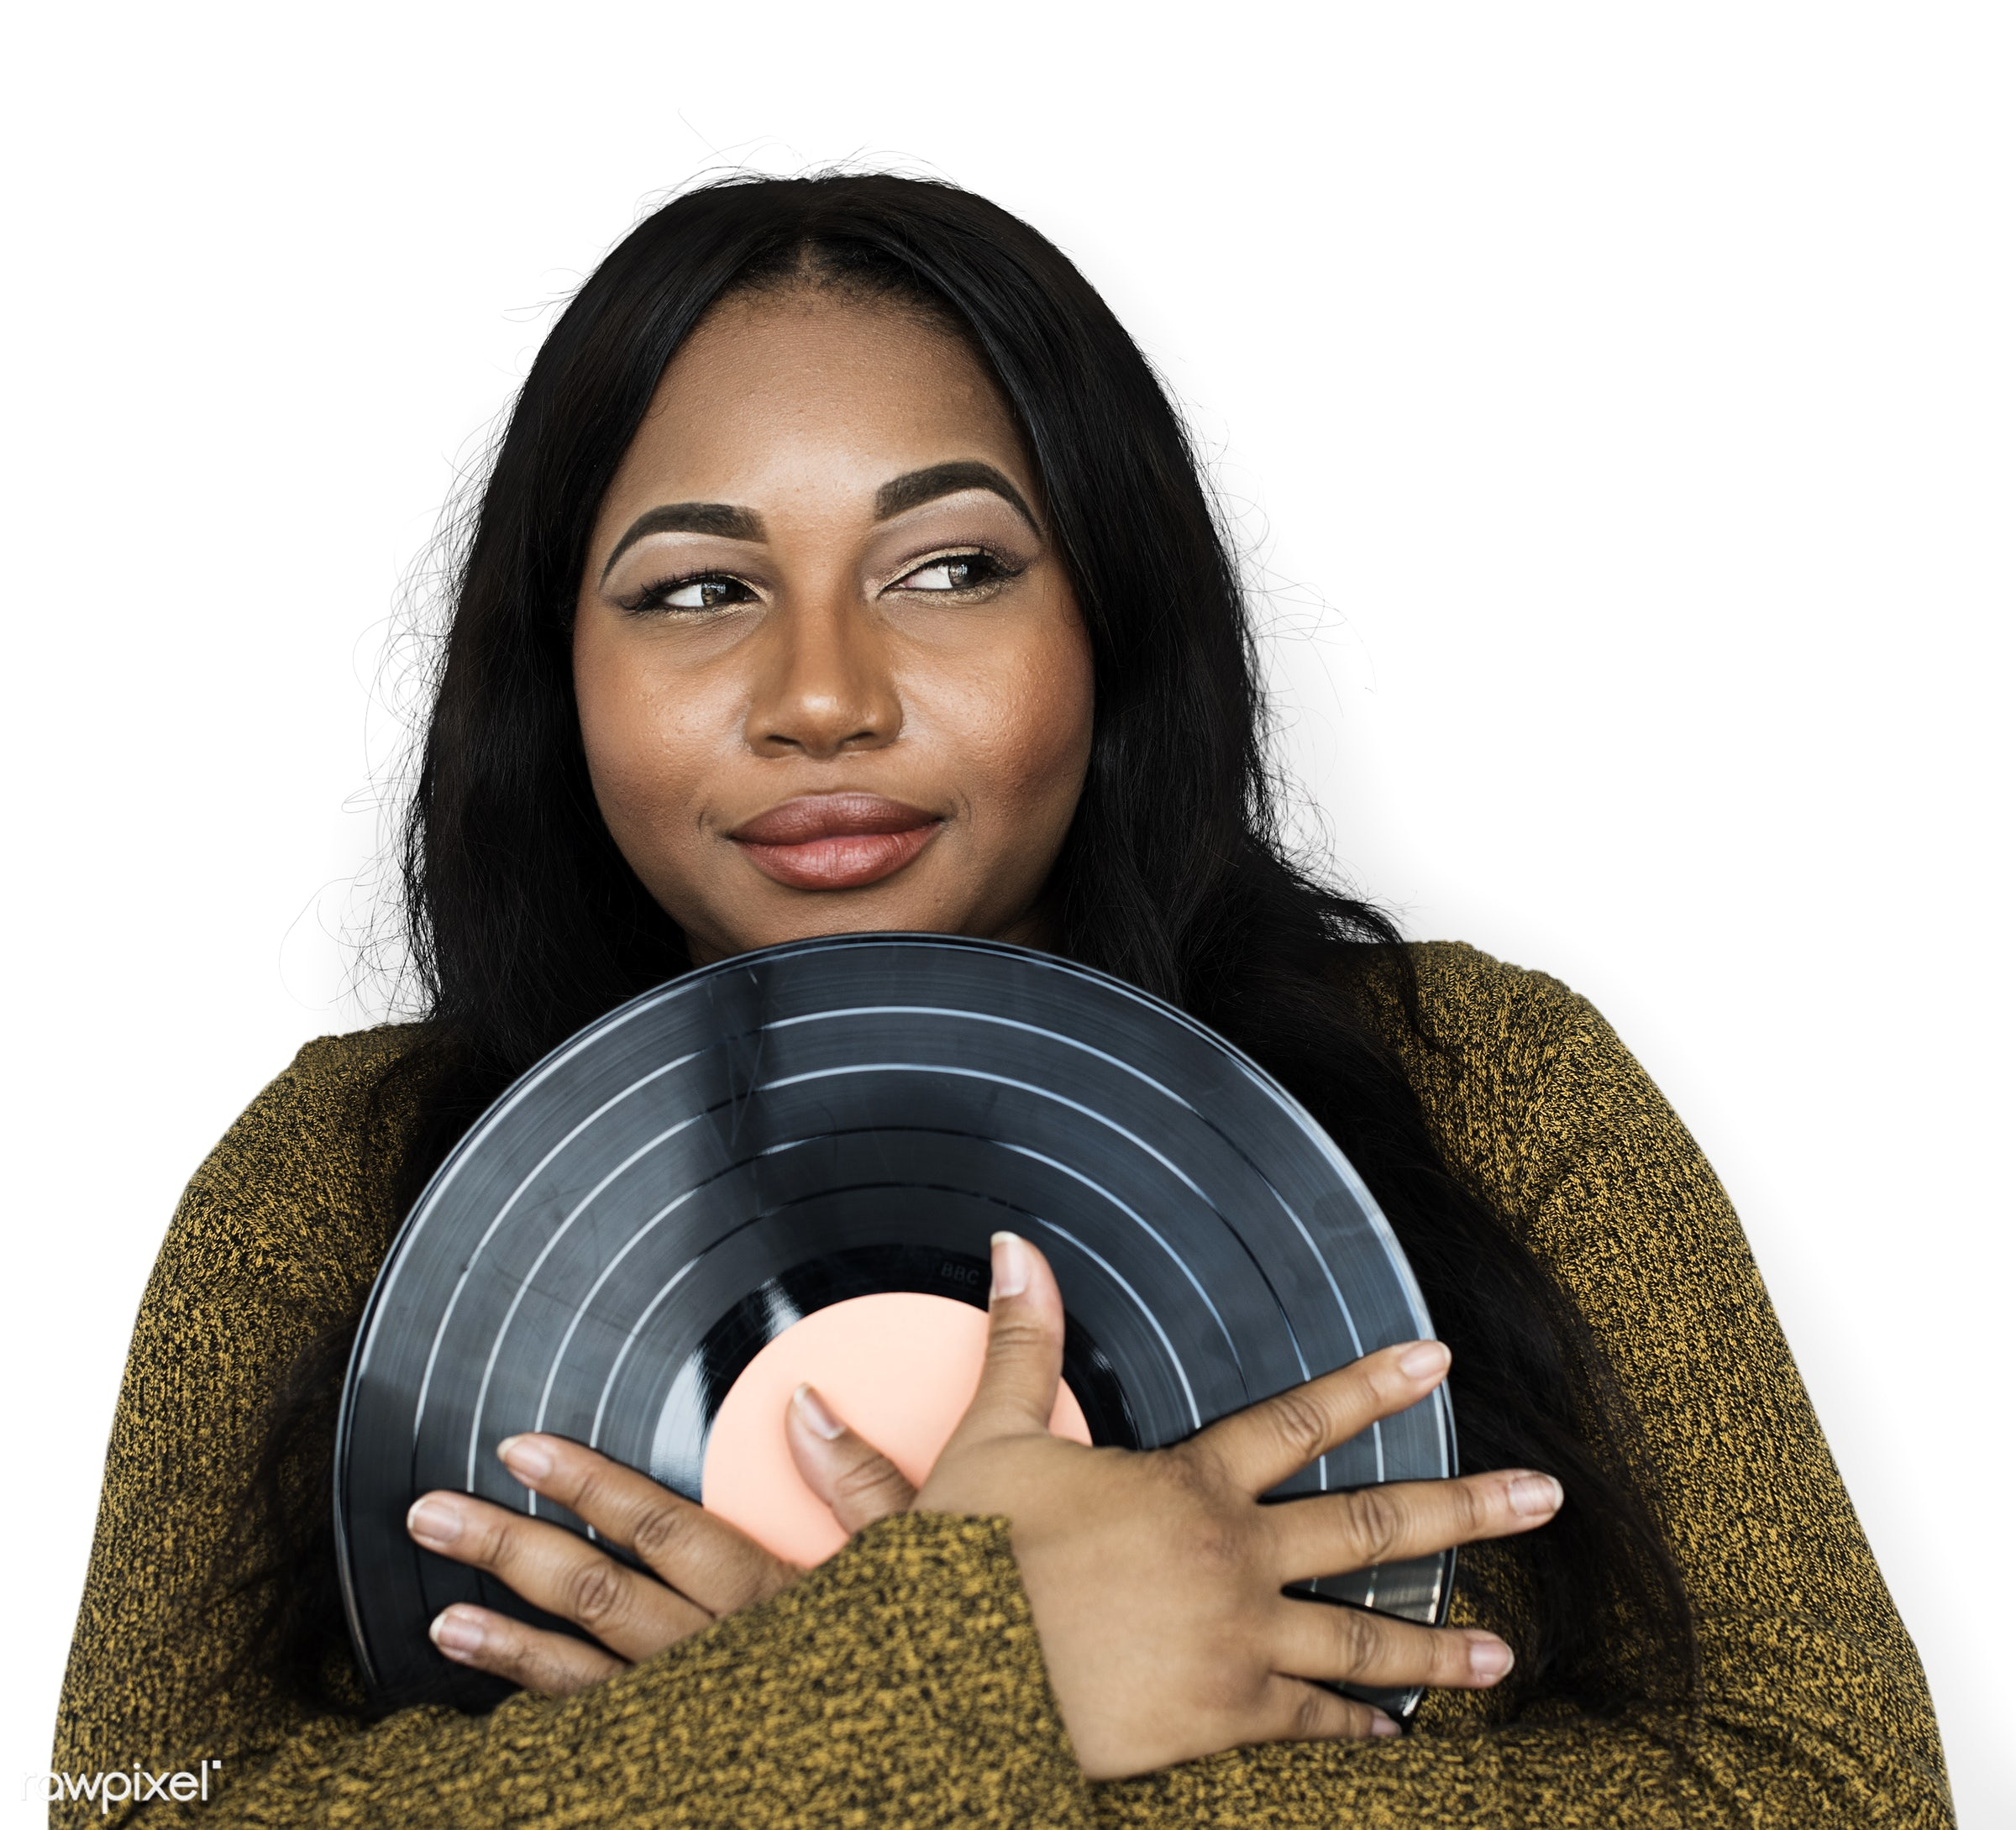 expression, person, isolated on white, retro, recreation, race, people, disc, ancient, woman, vinyl, activity, black, music...